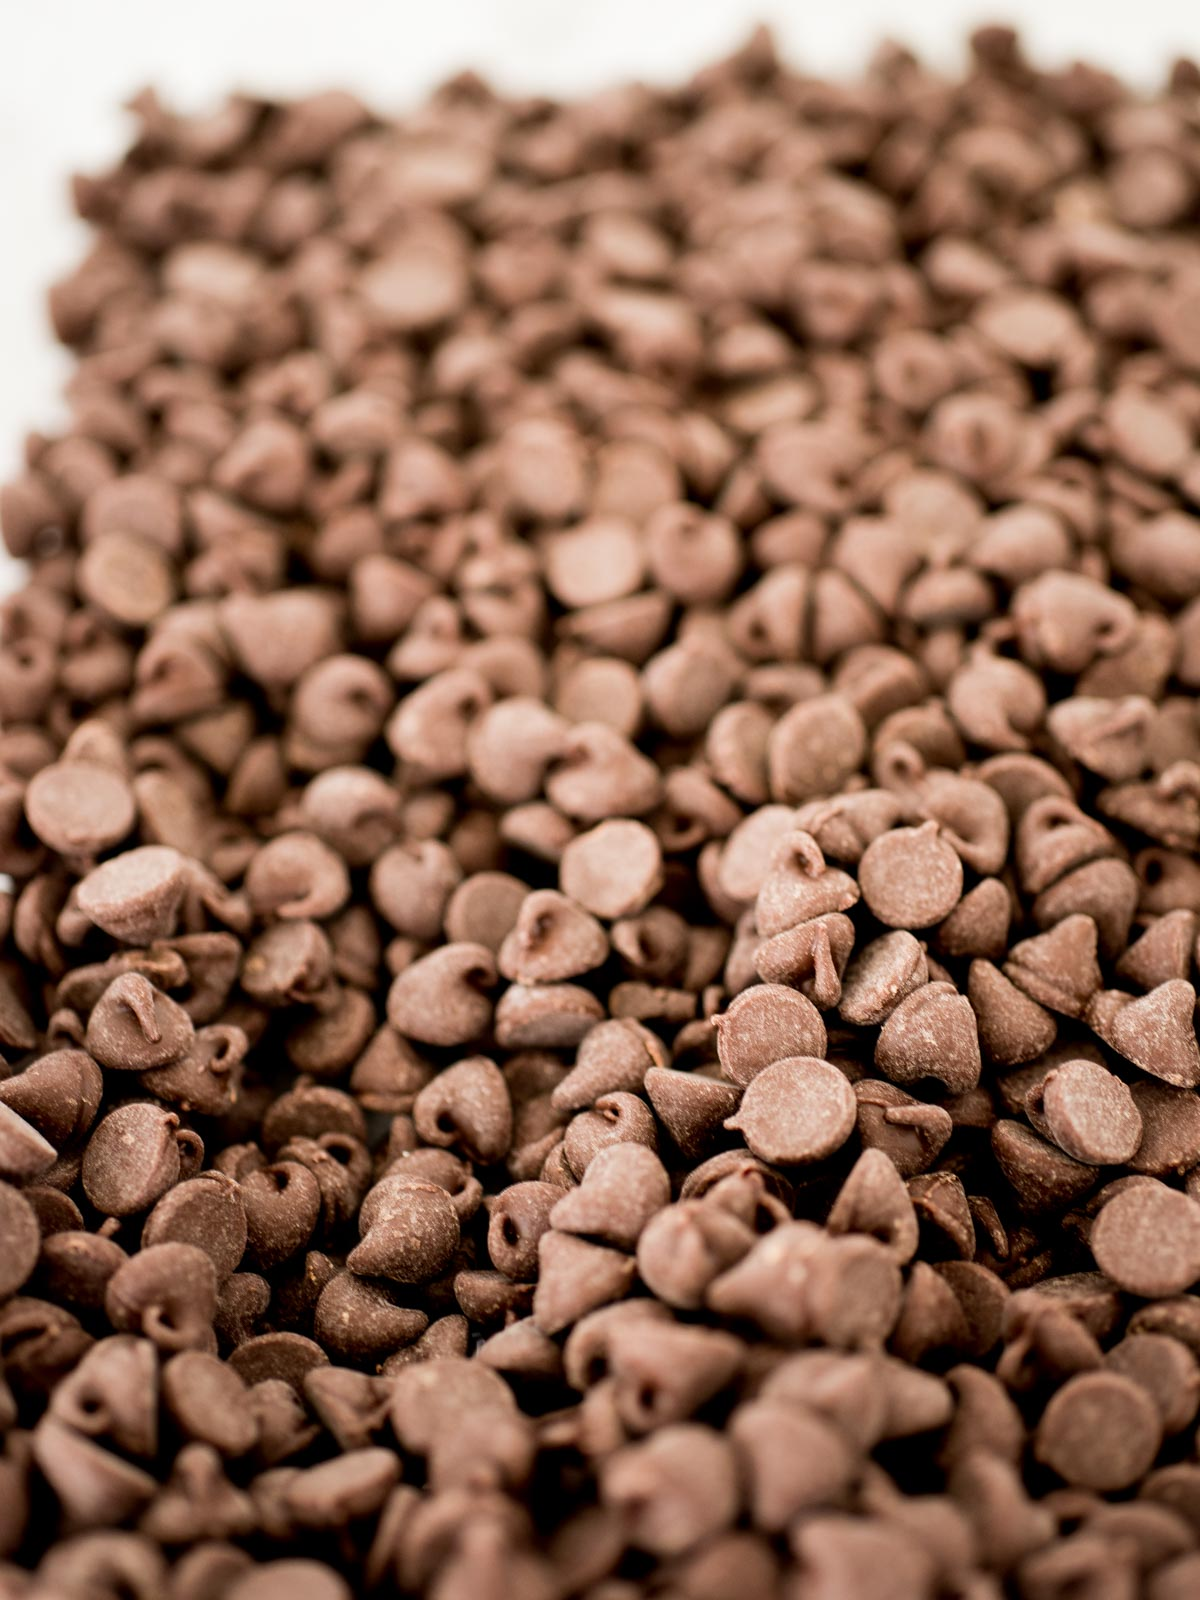 a pile of chocolate chips